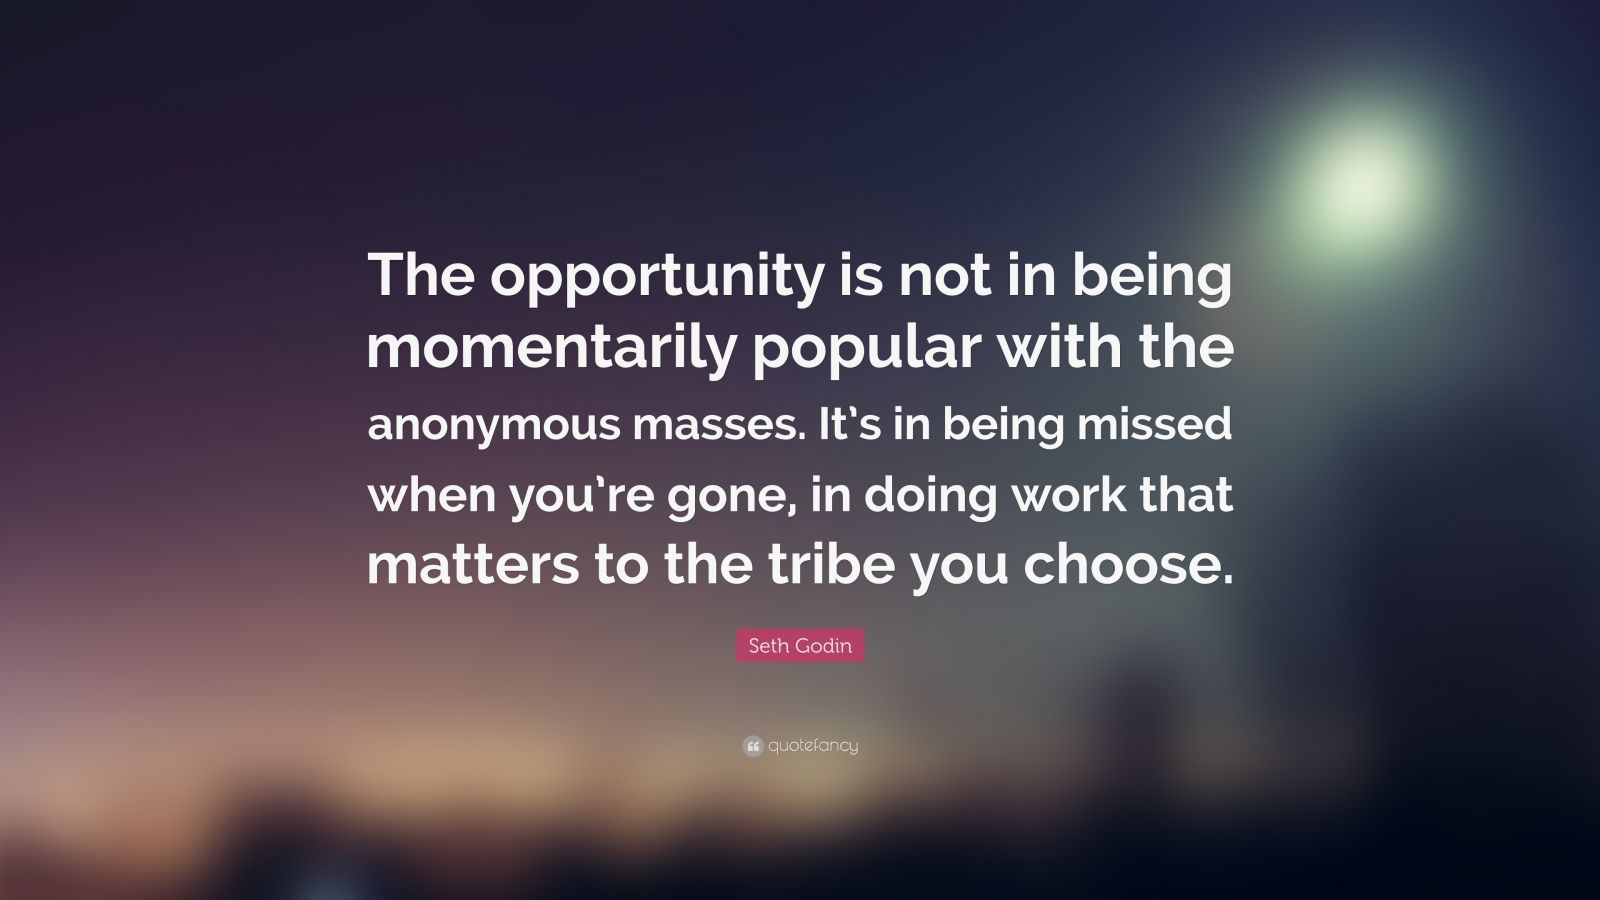 """Seth Godin Quote: """"The opportunity is not in being momentarily popular with the anonymous masses. It's in being missed when you're gone, in doing work that matters to the tribe you choose."""""""